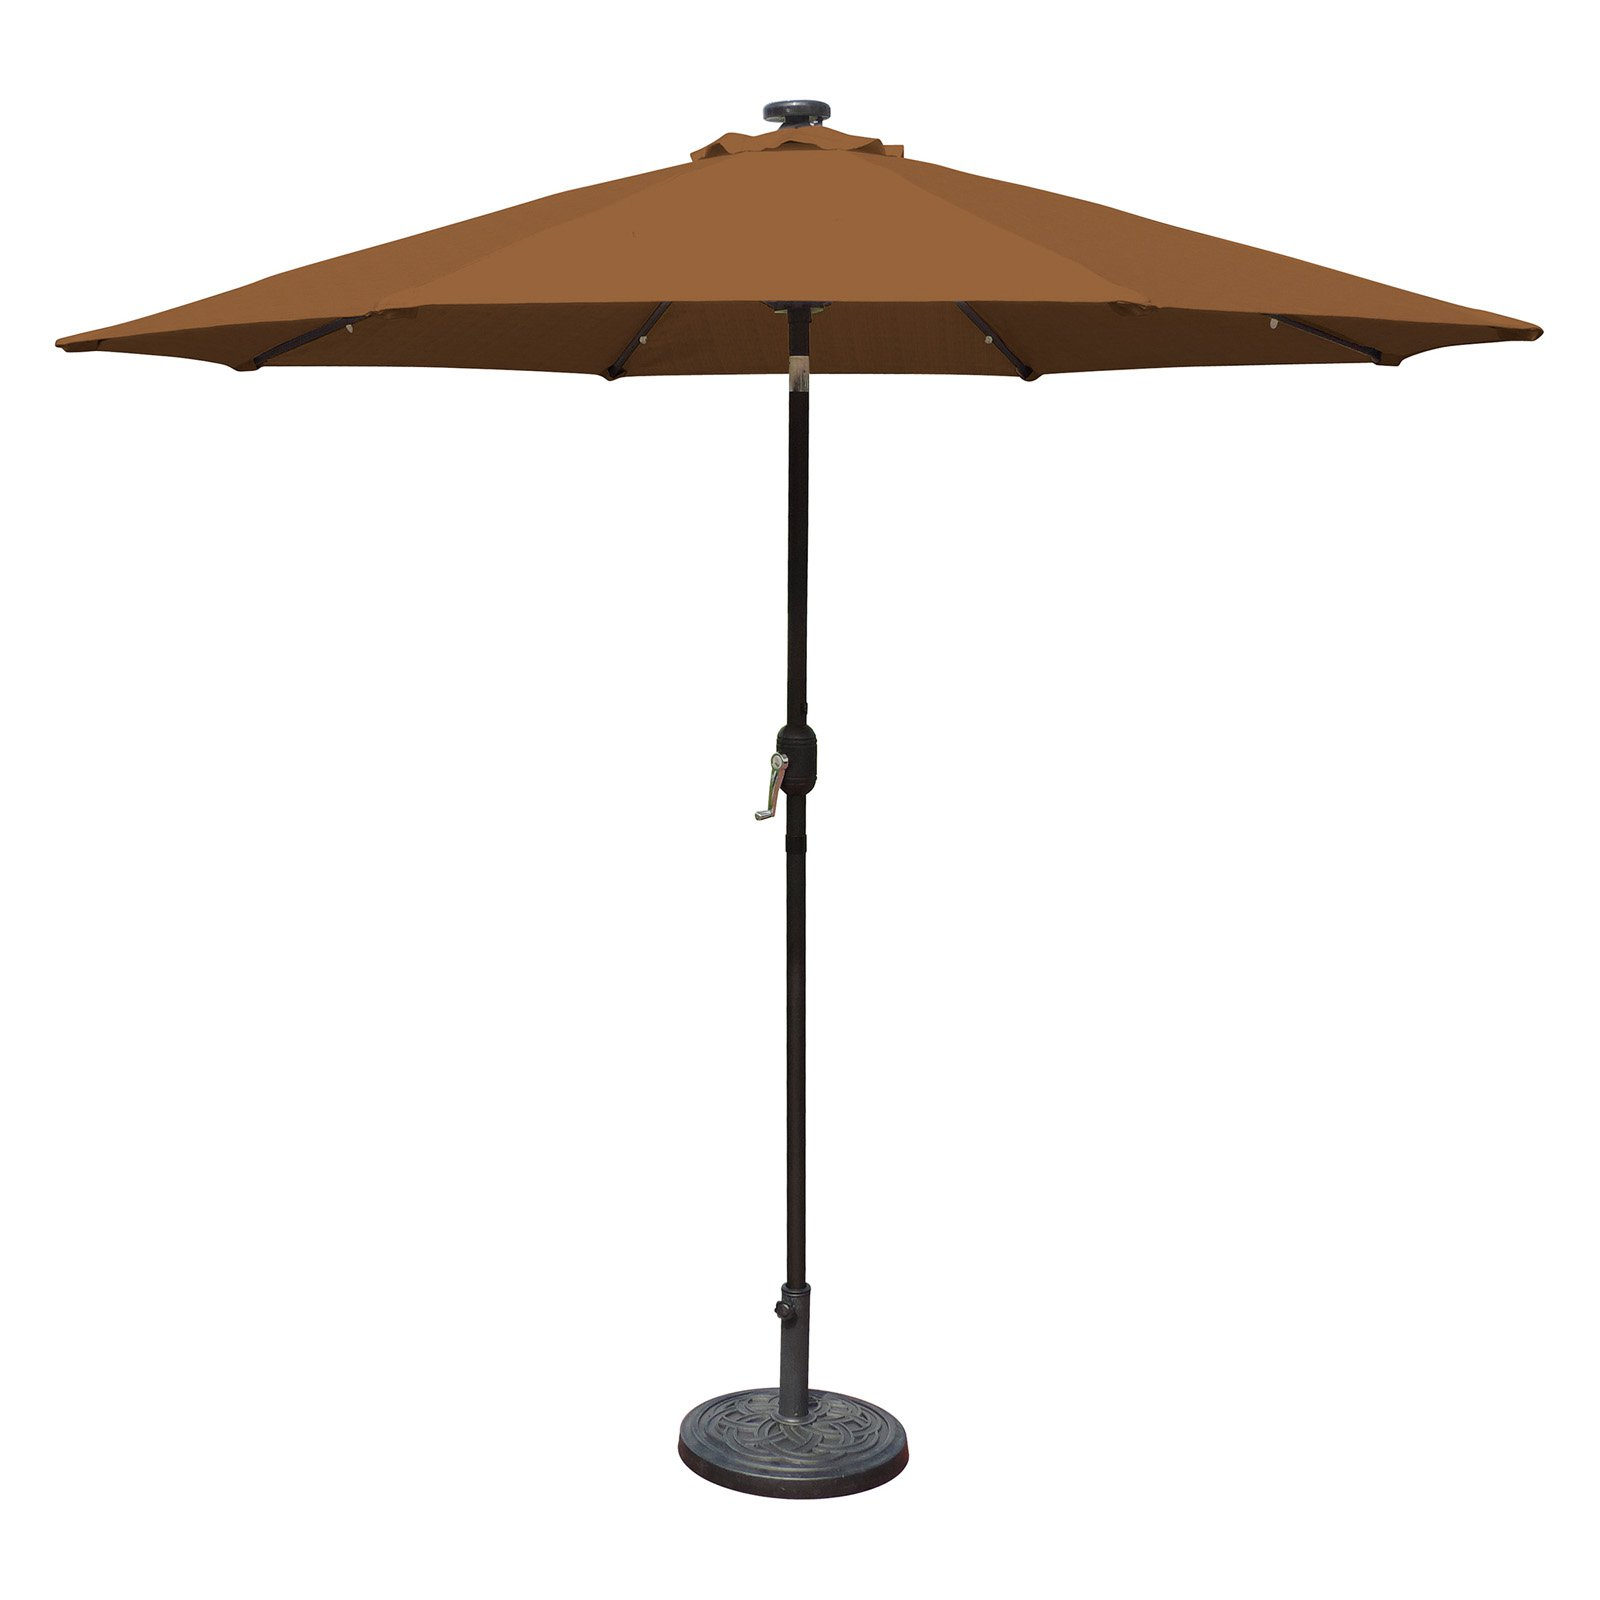 Island Umbrella Mirage Fiesta 9 Ft. Market Solar Led Auto Tilt Patio Pertaining To Well Known Hookton Crank Market Umbrellas (Gallery 7 of 20)